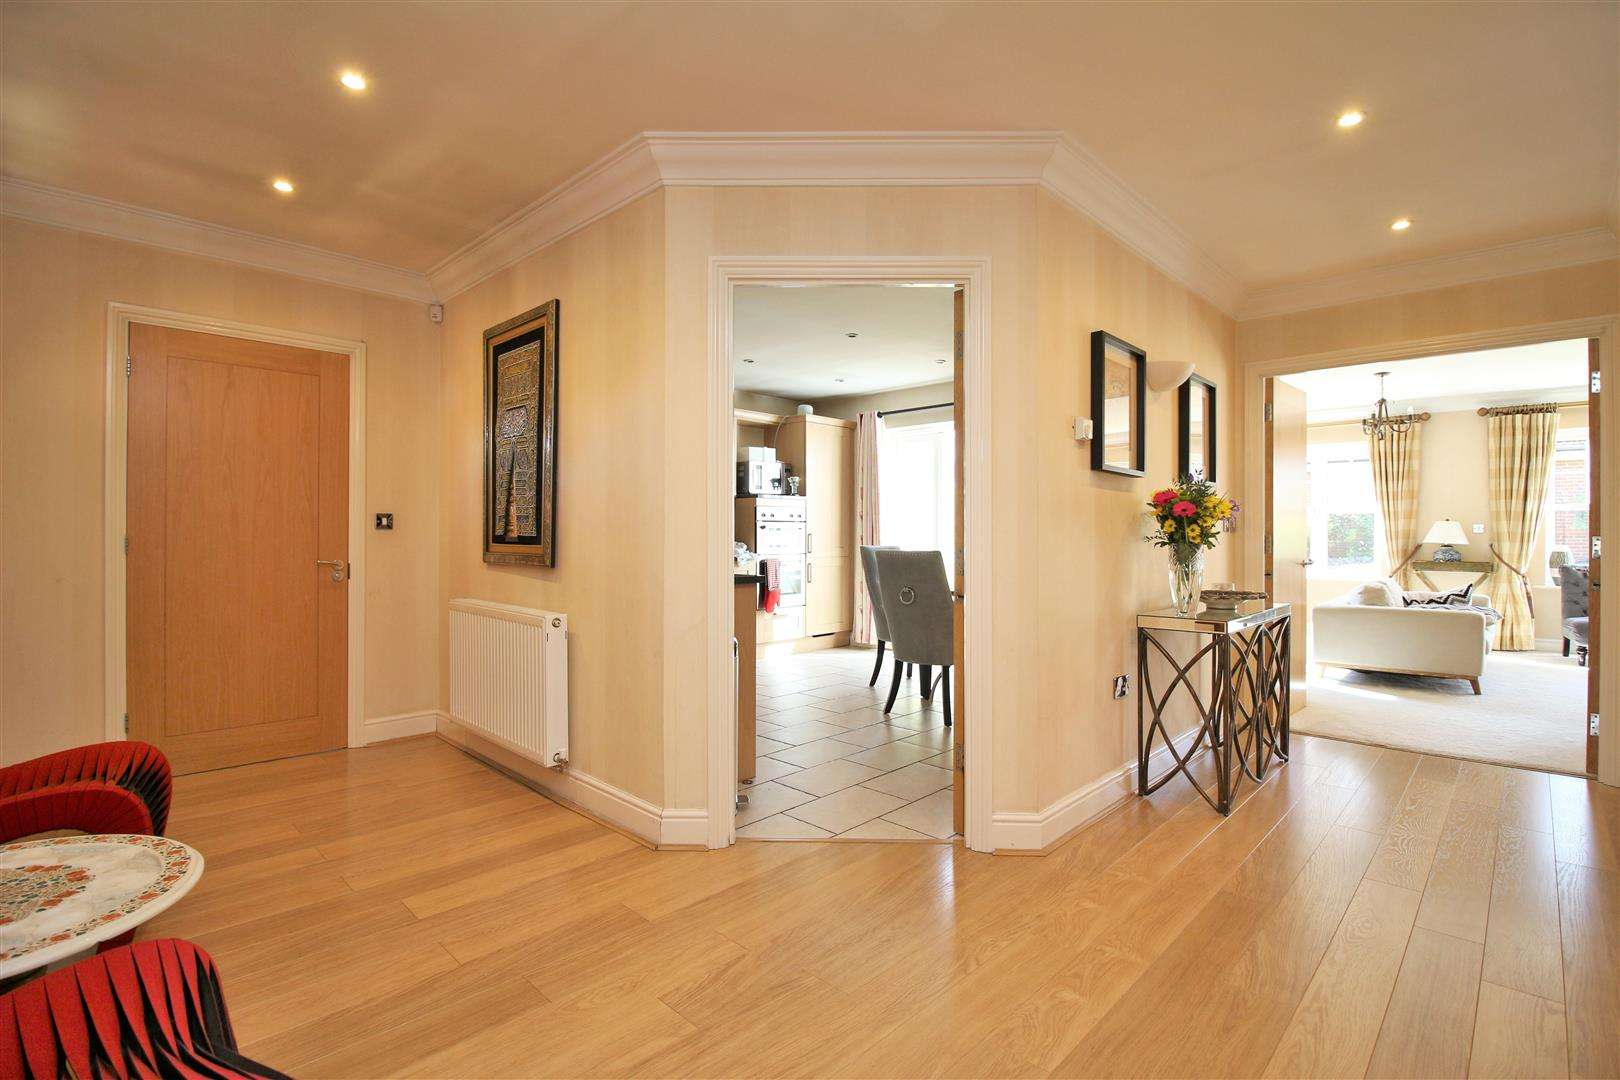 4 bed to rent in Bushey Heath - (Property Image 7)